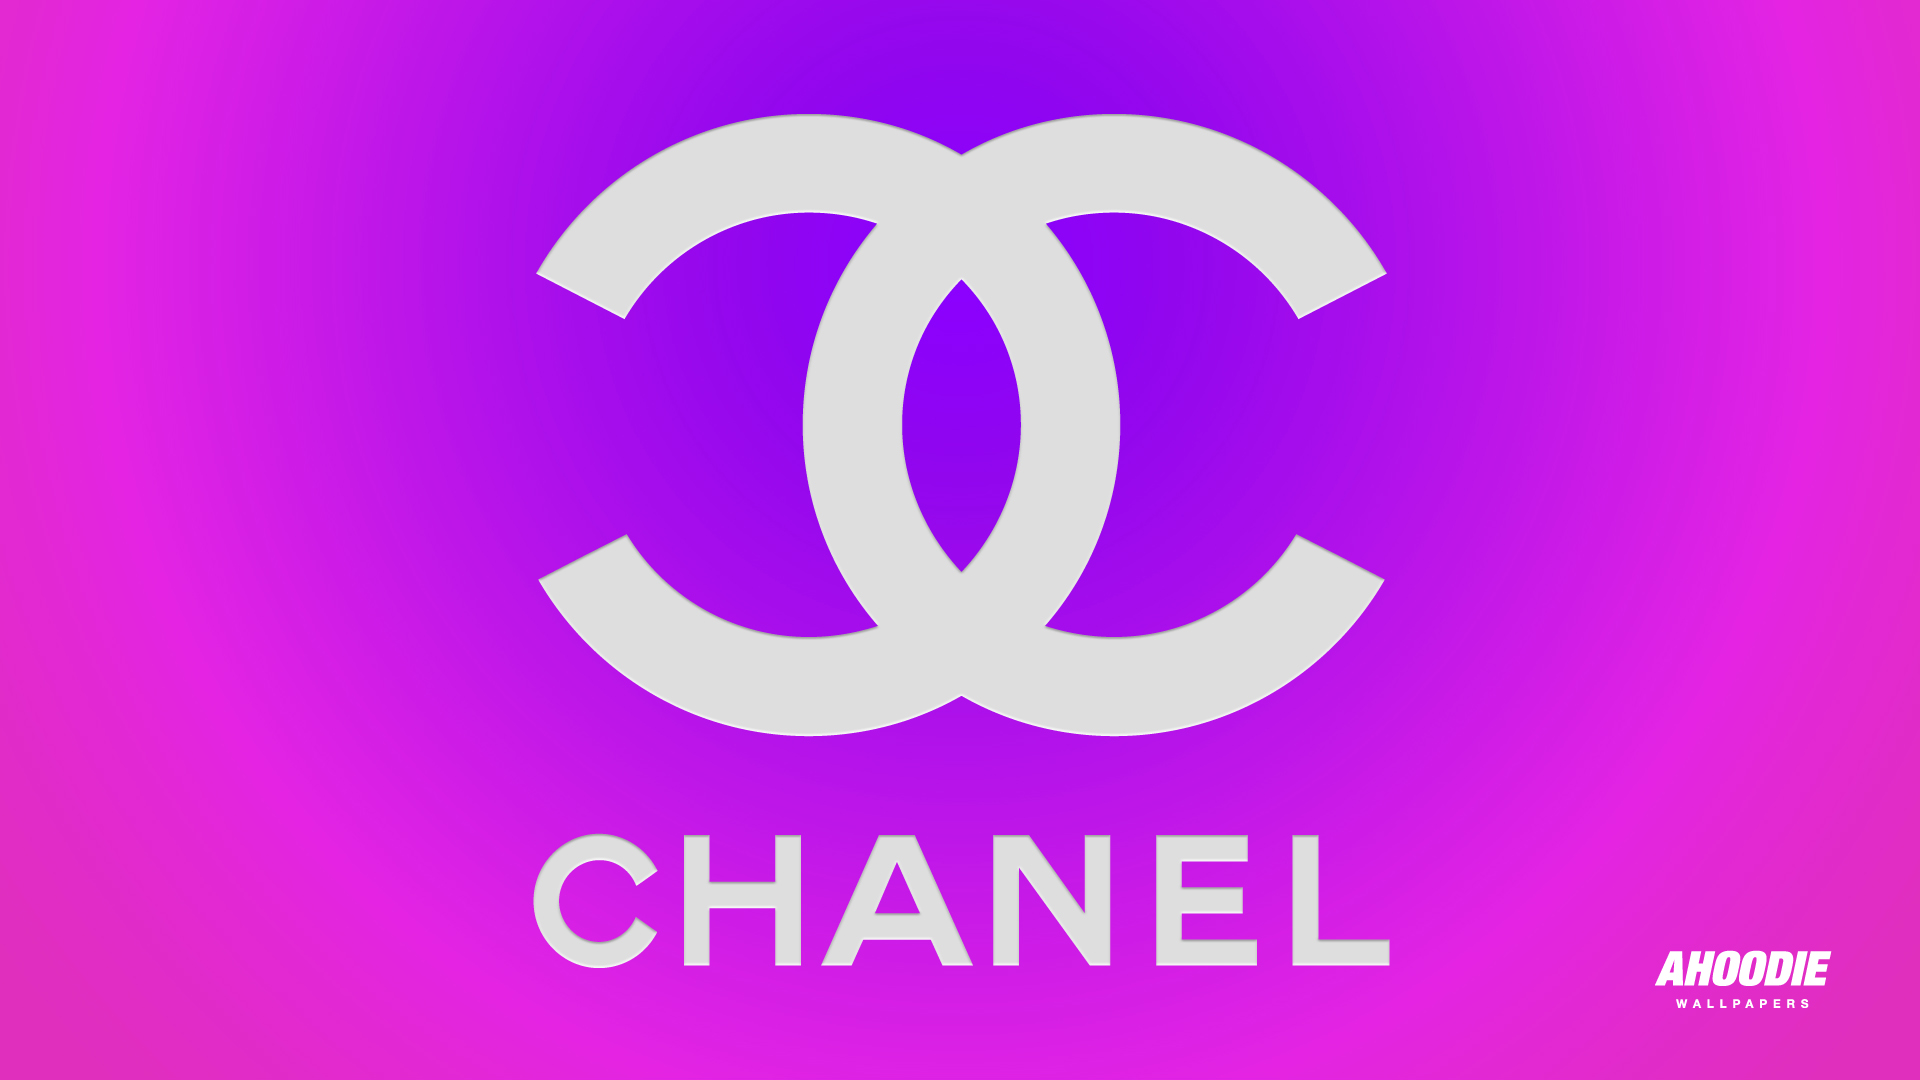 Chanel Wallpaper HD Desktop 2014 1920x1080